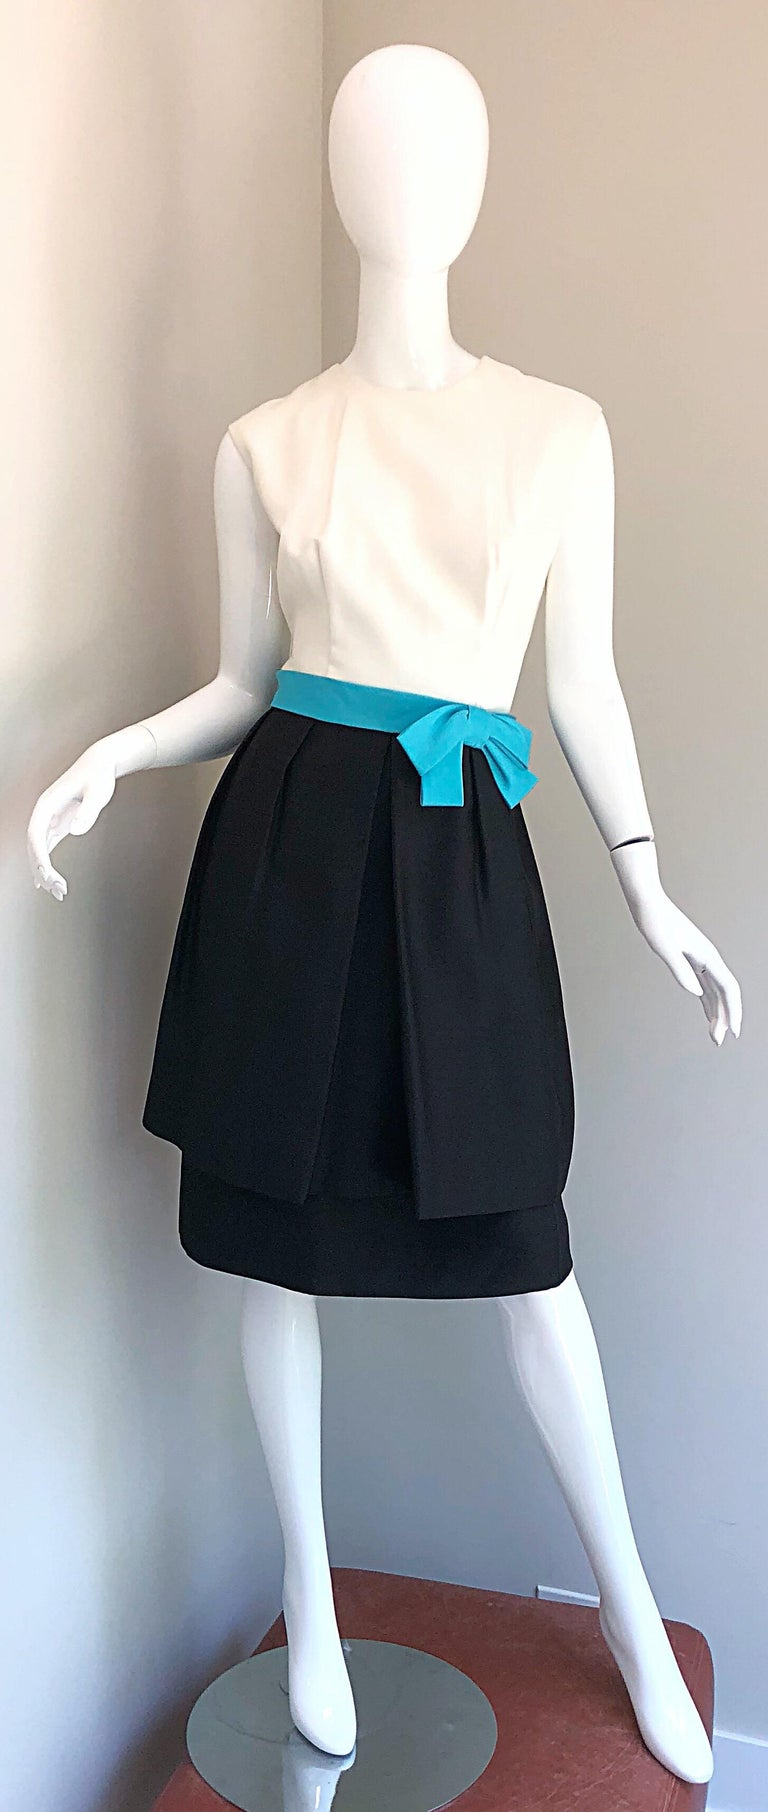 Beautiful late 1950s B. ALTMAN black and white and turquoise blue silk cocktail dress! Features a fitted white bodice with a black full skirt and nipped hem. Attached turquoise blue bow belt adds a pop of color. Full metal zipper up the back with